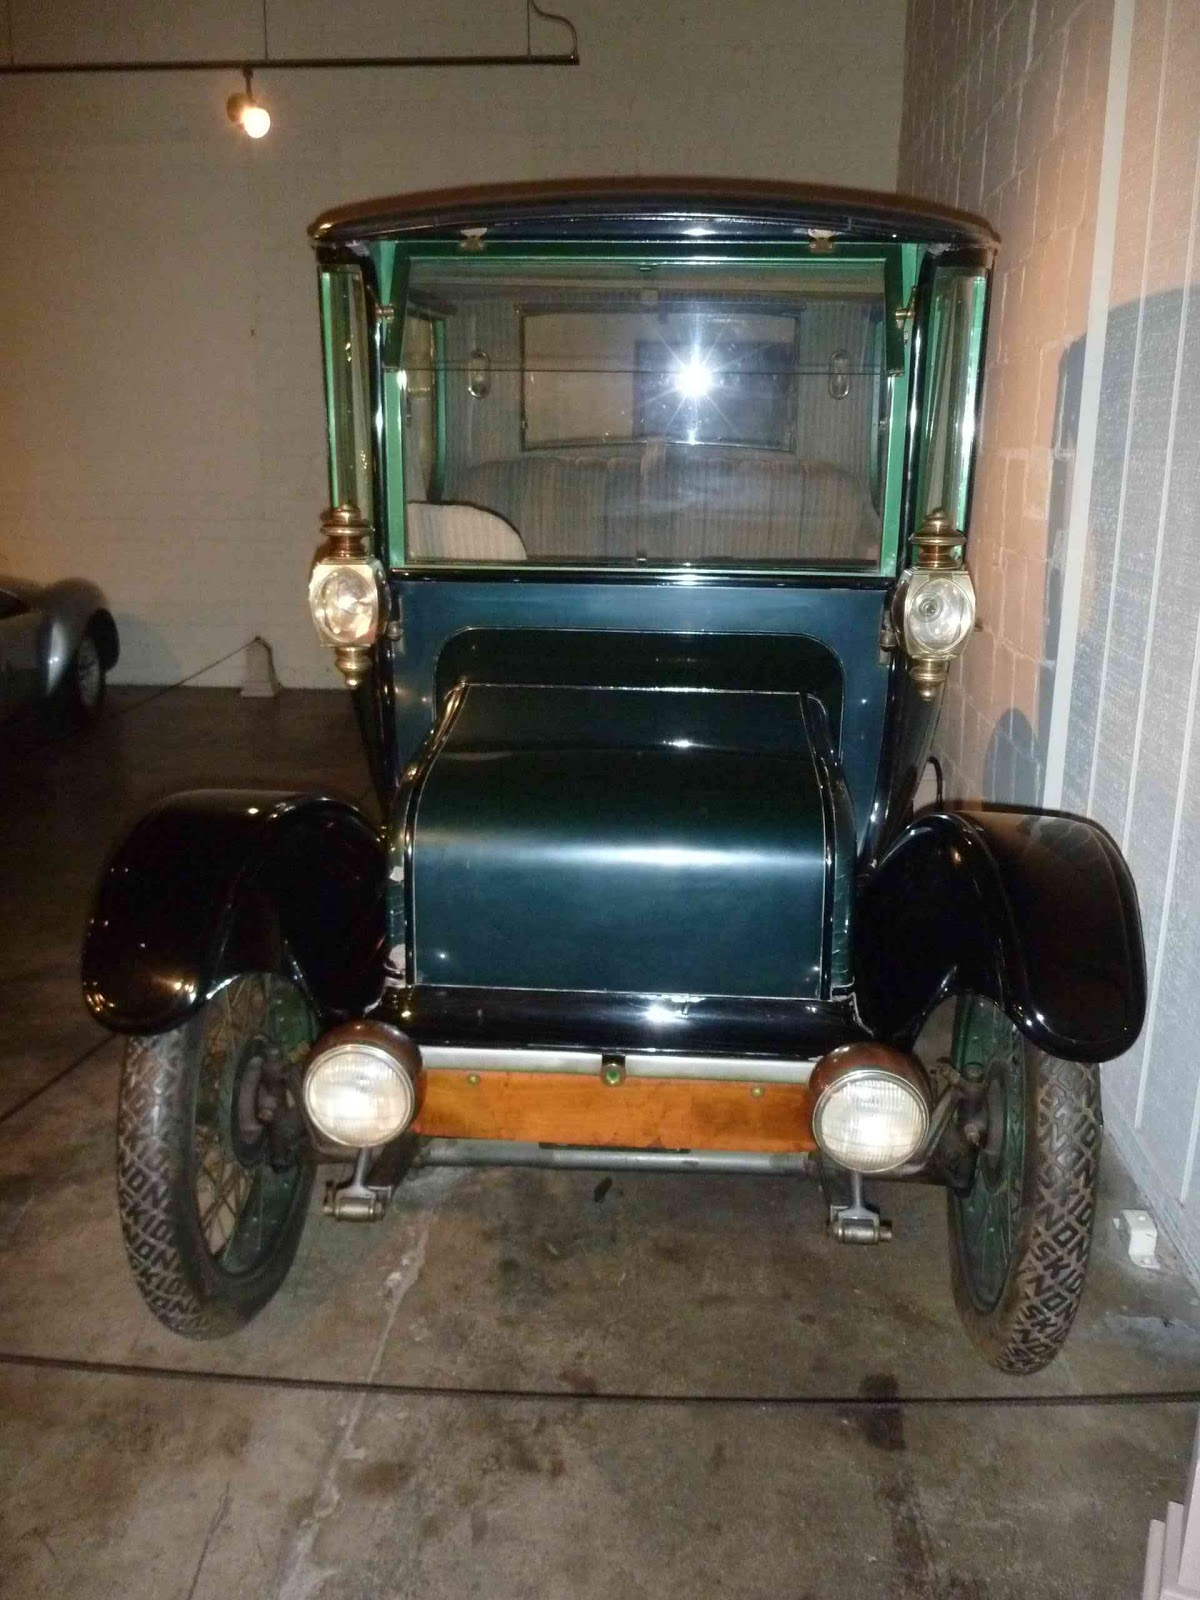 r4l 2011 this little guy was a 1916 rauch and lang j 6 it was electric had 6 forward speeds and 3 reverse this 100 inch wheelbased beauty cost 3 000 back in the